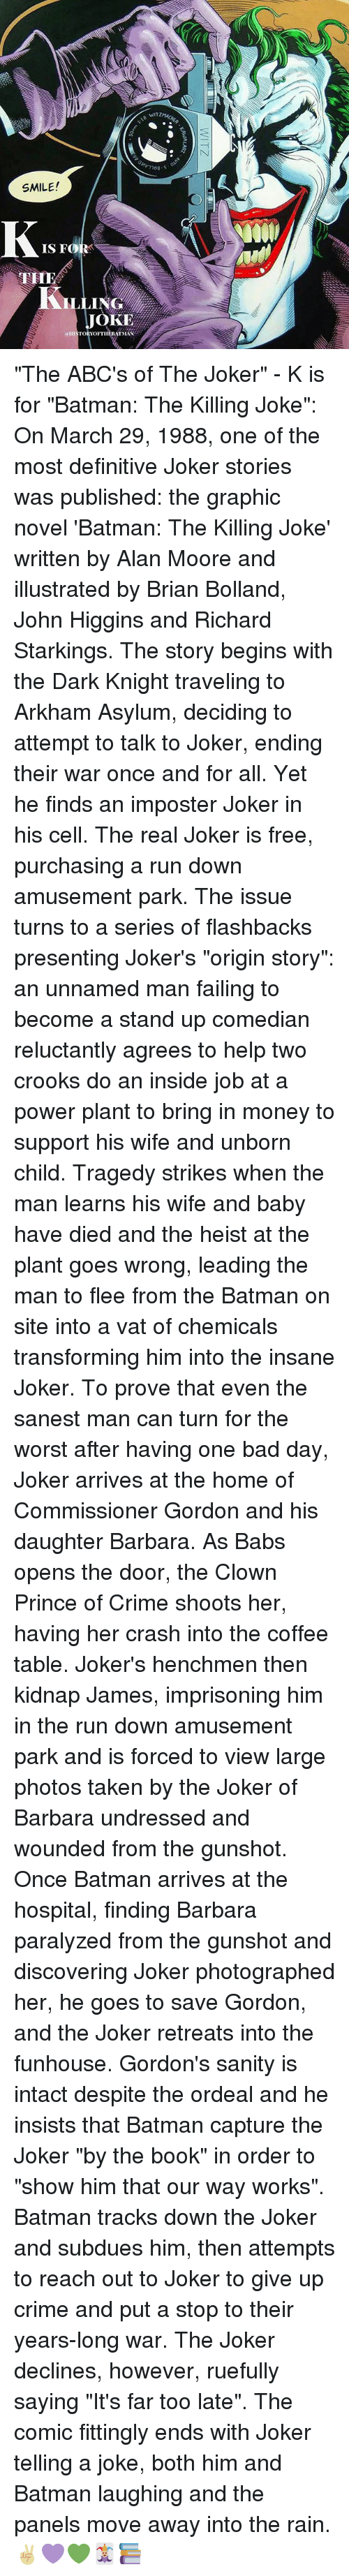 """stand up comedian: (TZMACHER  vlETZM4  Qhy7708  7708-S  SMILE!  IS FOR  .LING  JOKE  HISTORYOFI'llEBAT3Lse..  WITZ  KAWALAR2  K """"The ABC's of The Joker"""" - K is for """"Batman: The Killing Joke"""": On March 29, 1988, one of the most definitive Joker stories was published: the graphic novel 'Batman: The Killing Joke' written by Alan Moore and illustrated by Brian Bolland, John Higgins and Richard Starkings. The story begins with the Dark Knight traveling to Arkham Asylum, deciding to attempt to talk to Joker, ending their war once and for all. Yet he finds an imposter Joker in his cell. The real Joker is free, purchasing a run down amusement park. The issue turns to a series of flashbacks presenting Joker's """"origin story"""": an unnamed man failing to become a stand up comedian reluctantly agrees to help two crooks do an inside job at a power plant to bring in money to support his wife and unborn child. Tragedy strikes when the man learns his wife and baby have died and the heist at the plant goes wrong, leading the man to flee from the Batman on site into a vat of chemicals transforming him into the insane Joker. To prove that even the sanest man can turn for the worst after having one bad day, Joker arrives at the home of Commissioner Gordon and his daughter Barbara. As Babs opens the door, the Clown Prince of Crime shoots her, having her crash into the coffee table. Joker's henchmen then kidnap James, imprisoning him in the run down amusement park and is forced to view large photos taken by the Joker of Barbara undressed and wounded from the gunshot. Once Batman arrives at the hospital, finding Barbara paralyzed from the gunshot and discovering Joker photographed her, he goes to save Gordon, and the Joker retreats into the funhouse. Gordon's sanity is intact despite the ordeal and he insists that Batman capture the Joker """"by the book"""" in order to """"show him that our way works"""". Batman tracks down the Joker and subdues him, then attempts to reach out to Joker to give up crim"""